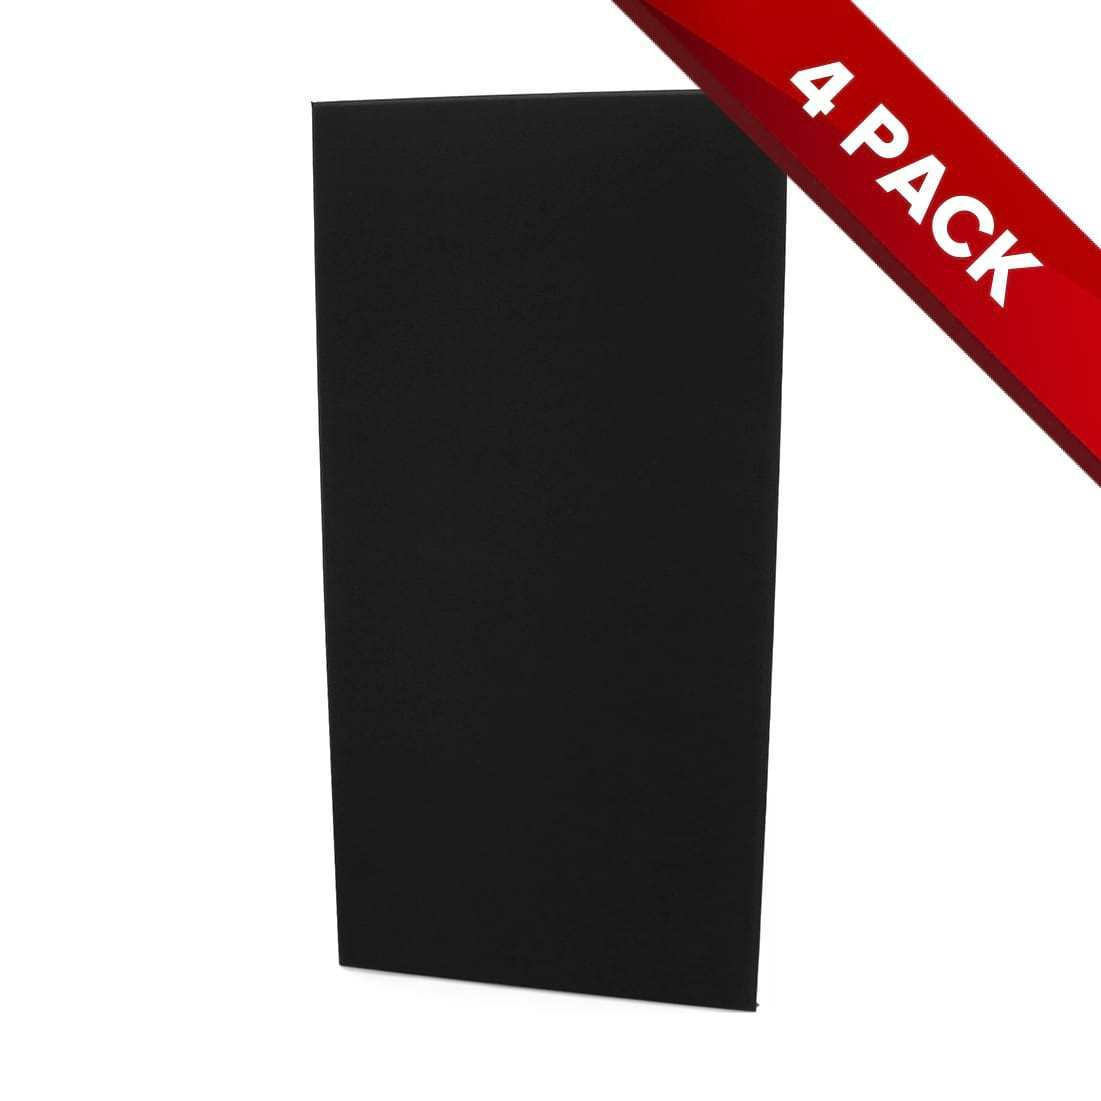 4x Fibreglass Acoustic Treatment Panel - Black Colour - 120cm x 60cm